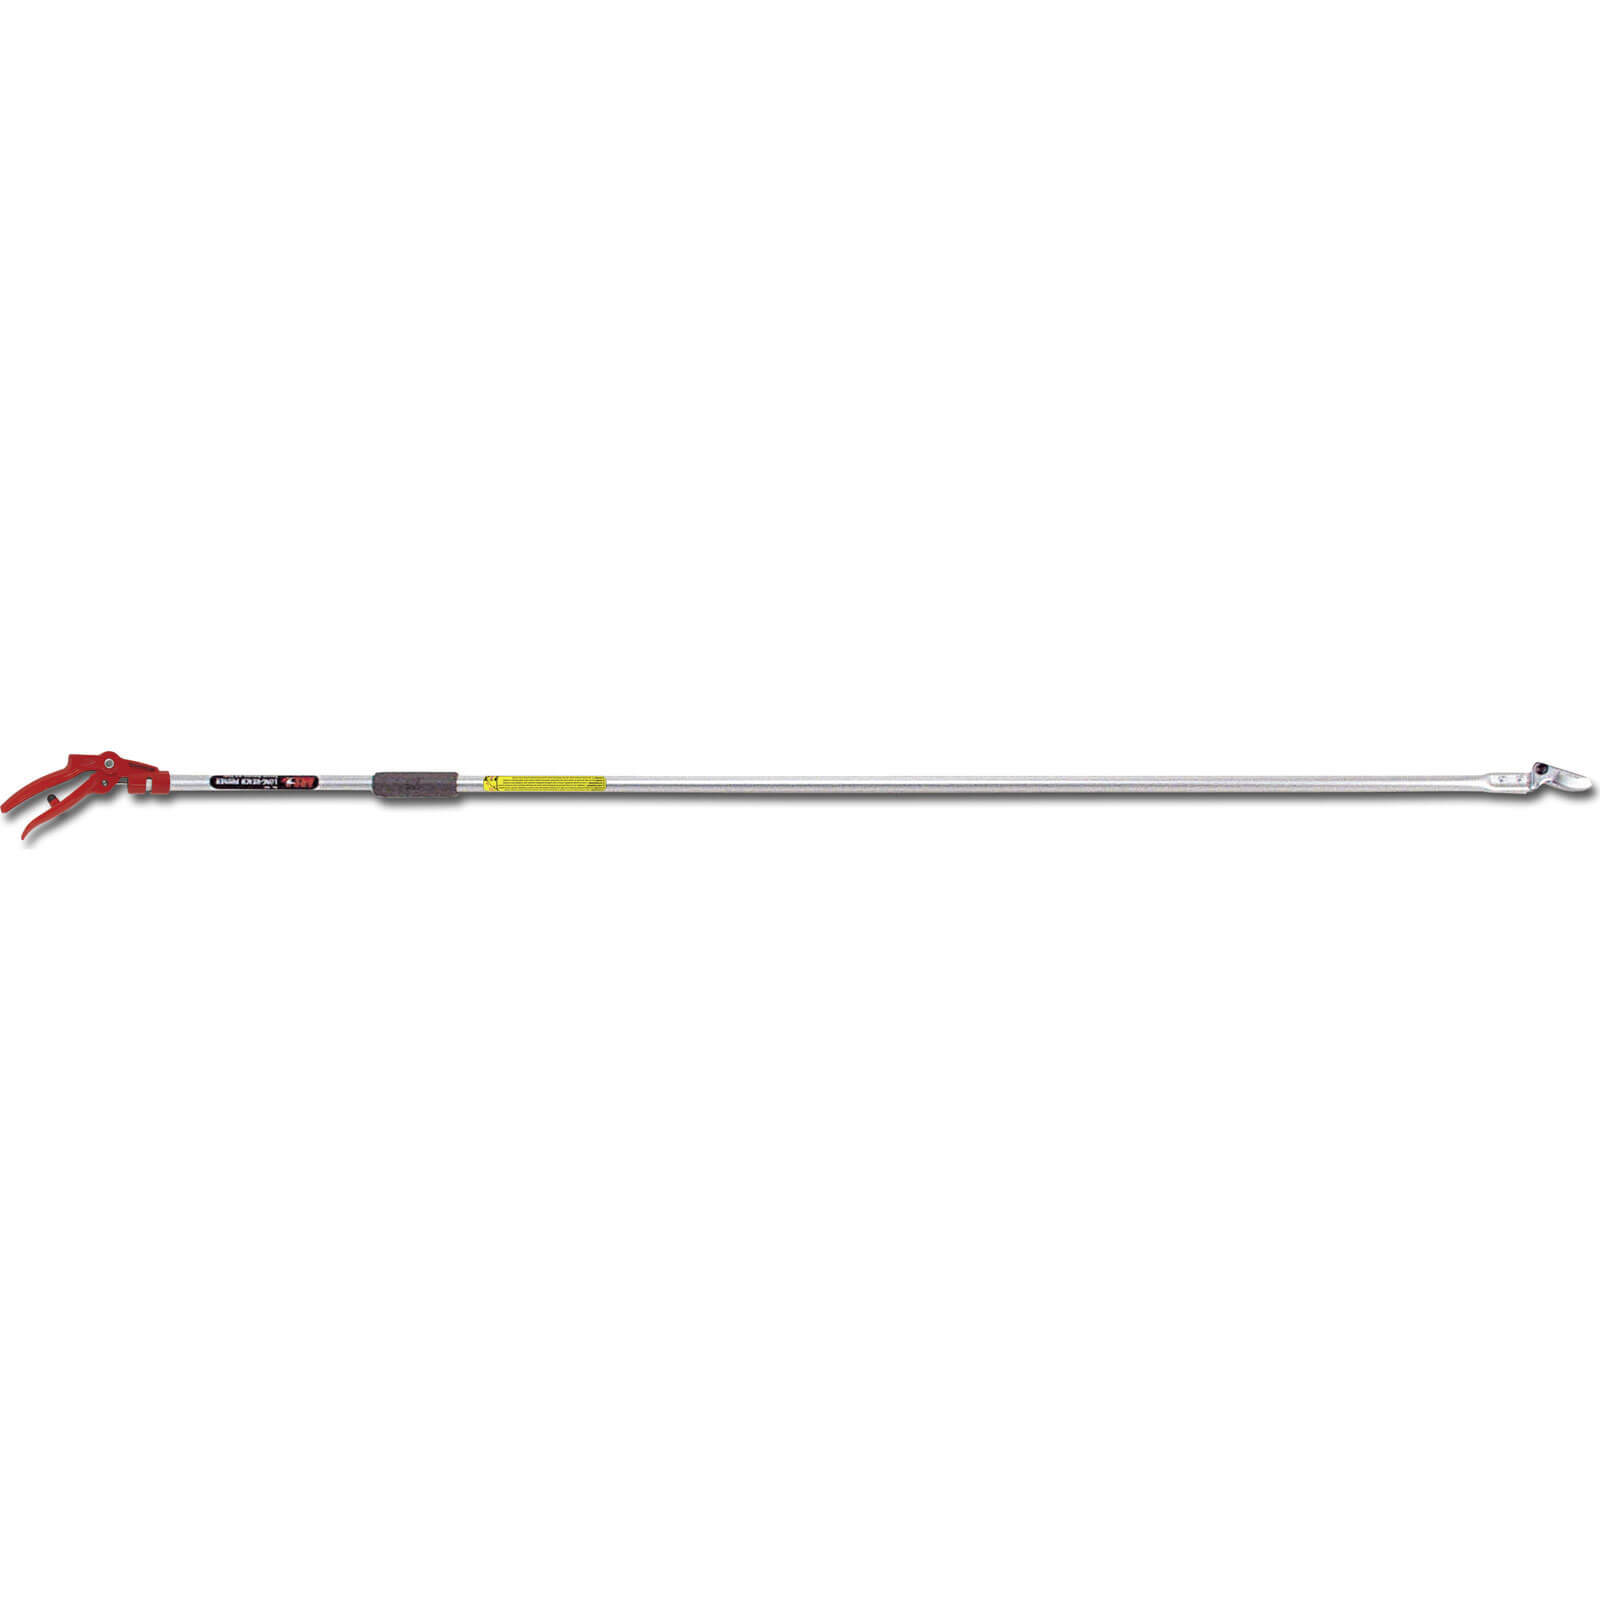 ARS 160-1.8 Long Reach Cut & Hold Pruner 1.8 Metres Long